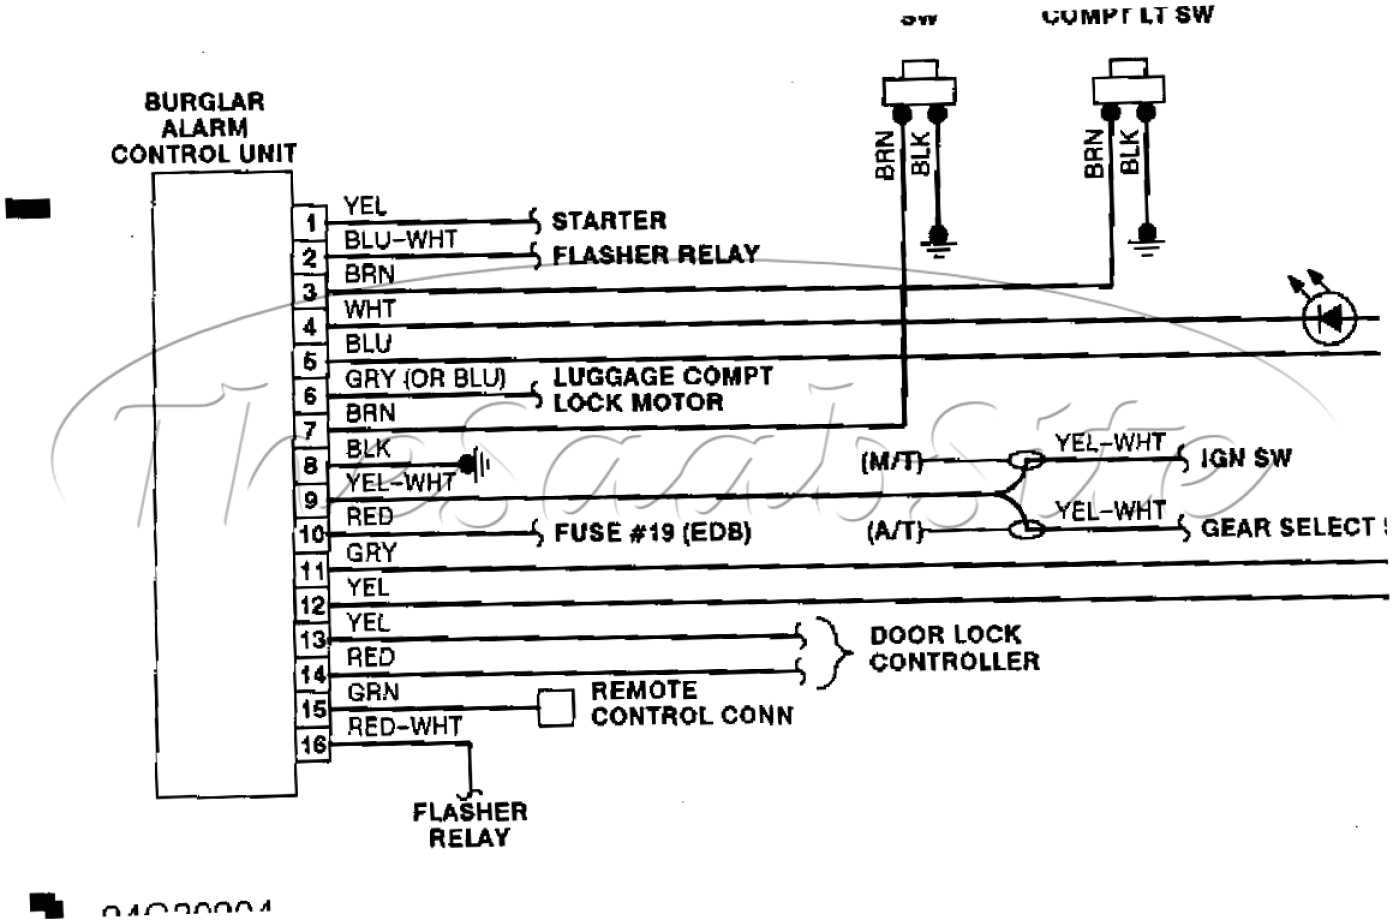 whelen justice light bar wiring diagram diagram schematics whelen liberty wiring schematics whelen freedom wiring diagram